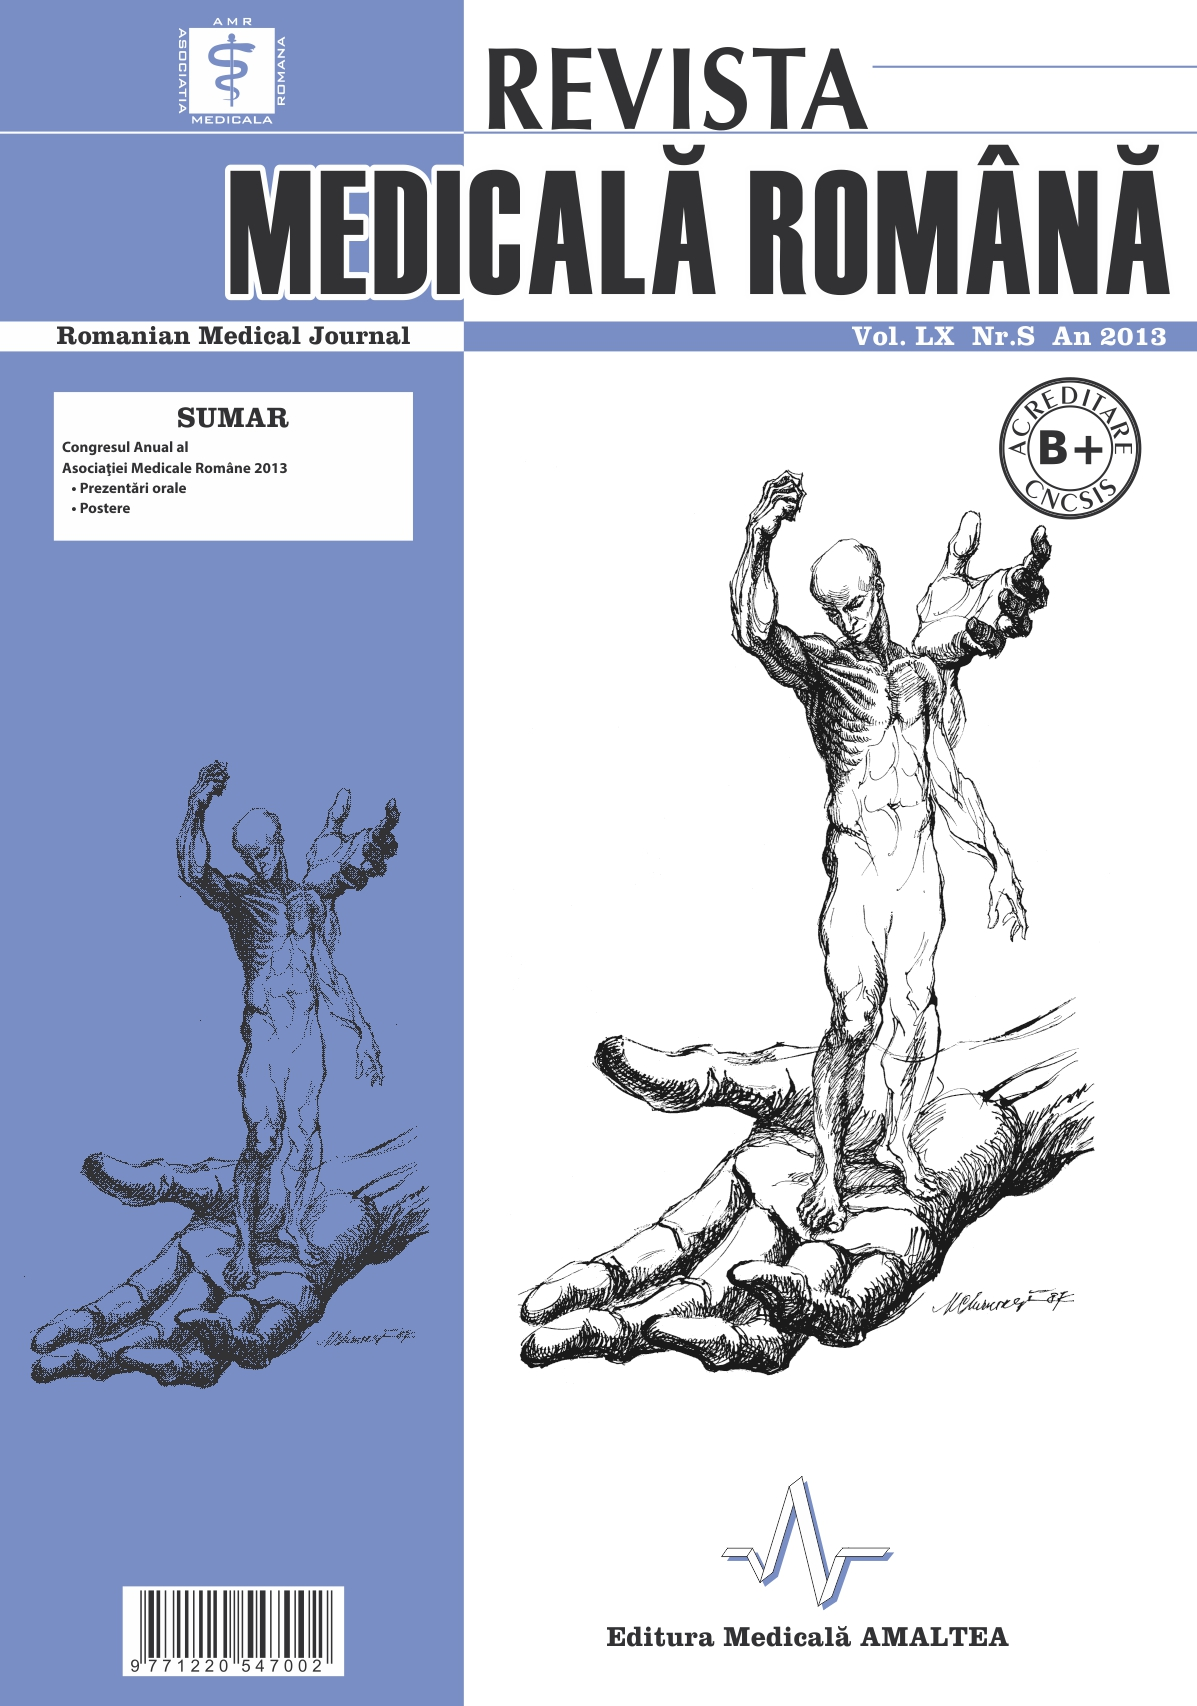 REVISTA MEDICALA ROMANA - Romanian Medical Journal, Vol. LX, No. S, Year 2013